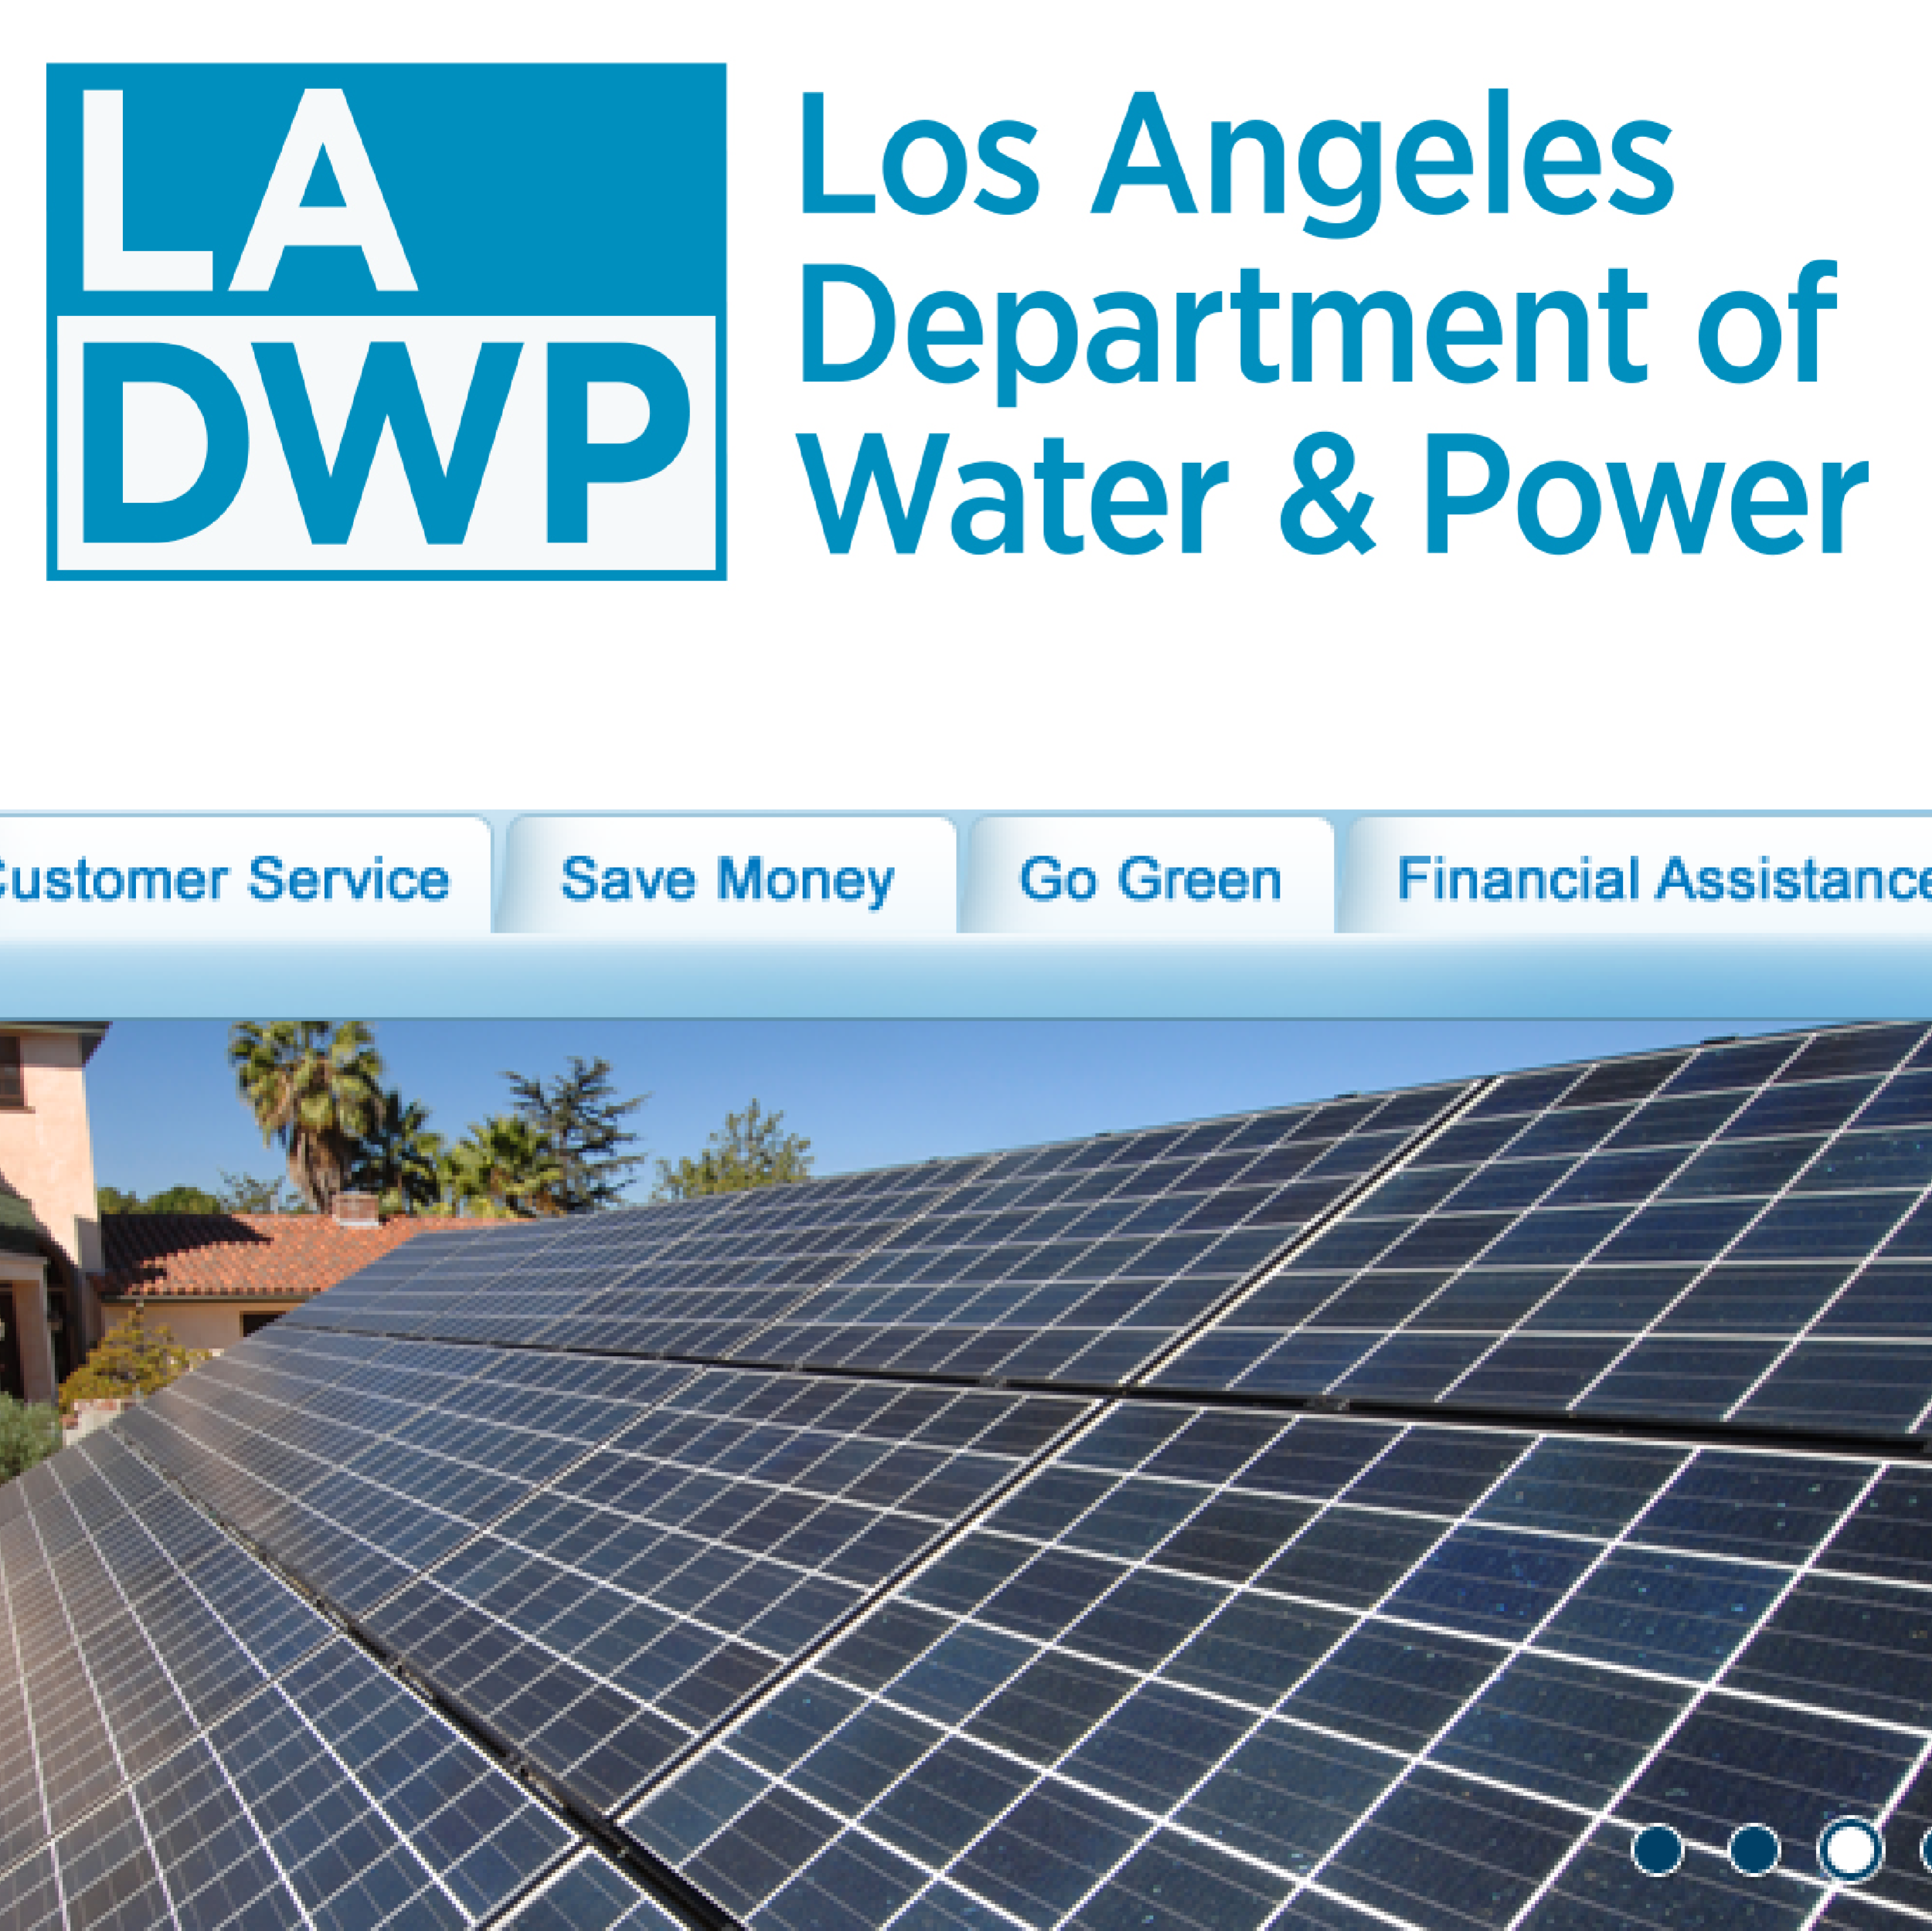 LADWP-01.png